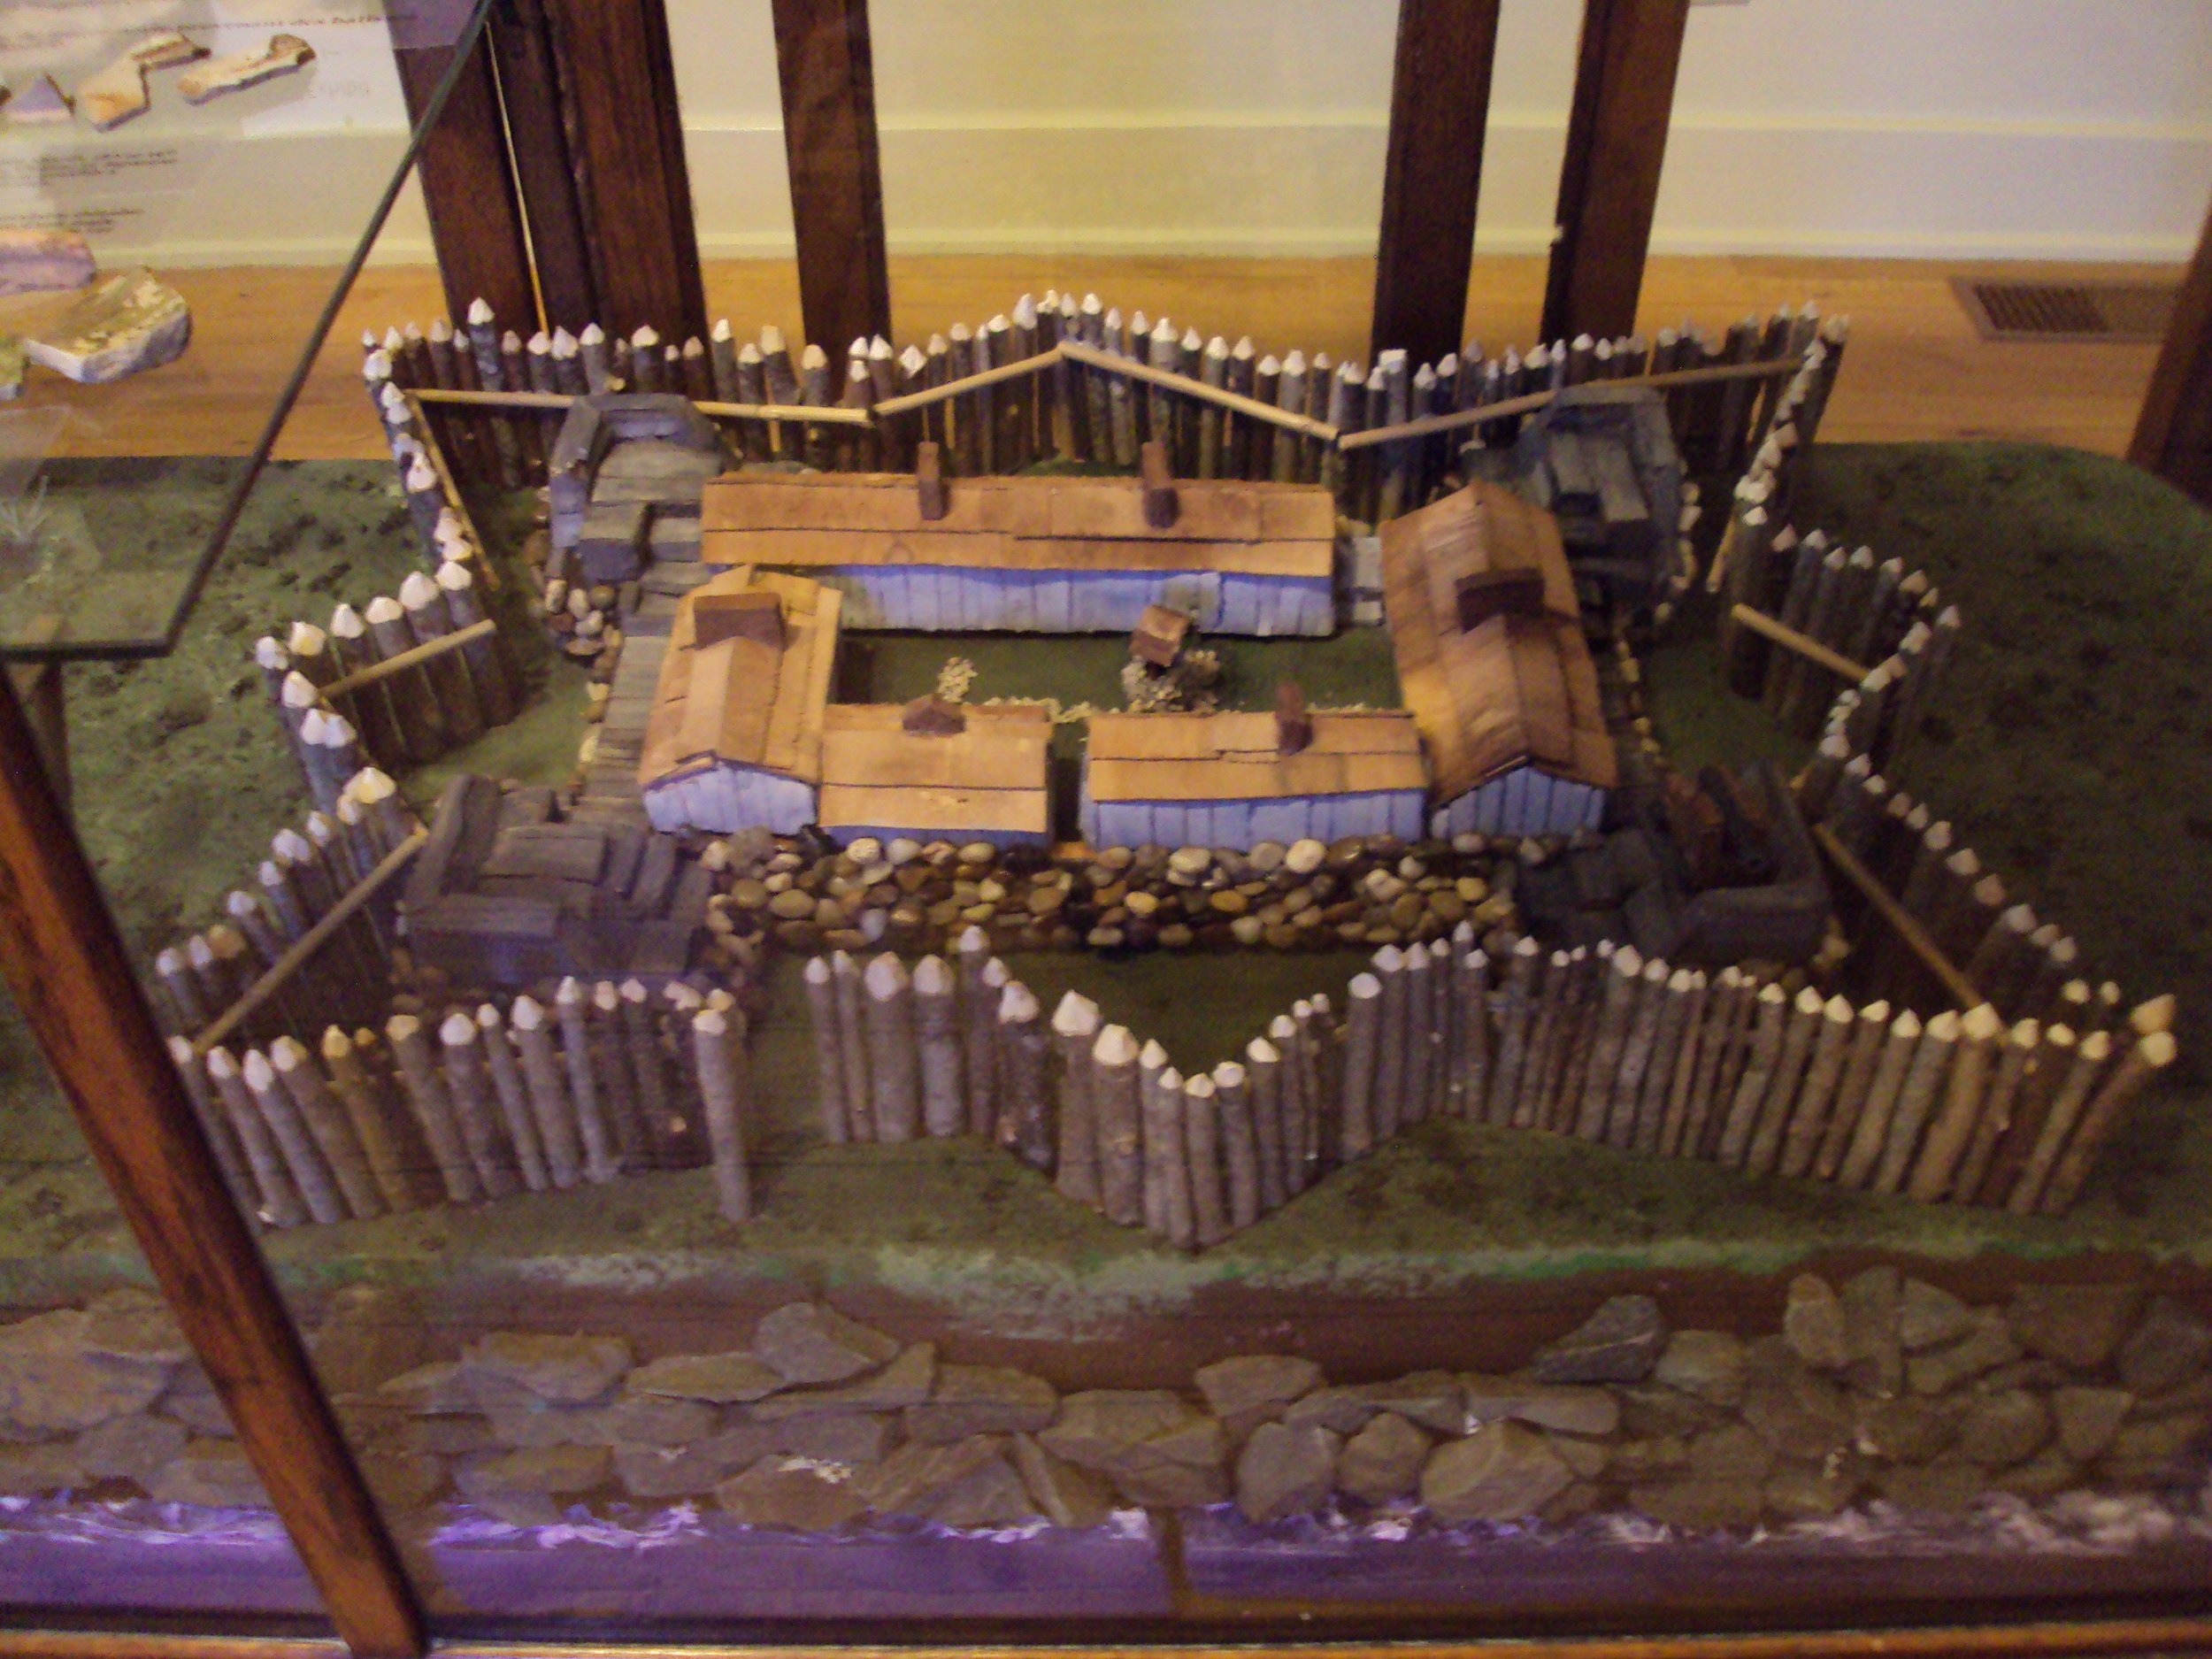 European settlement of Canada began with Fort Point, when Razilly established the first capital of what was then called 'New France' in 1632. Among the displays chronicling this story and other aspects of Acadian history in the LaHave area, visitors can hold one of the hand made bricks from France which were used as ballast in the ships carrying new settlers here, then used to construct the base of the fort itself.